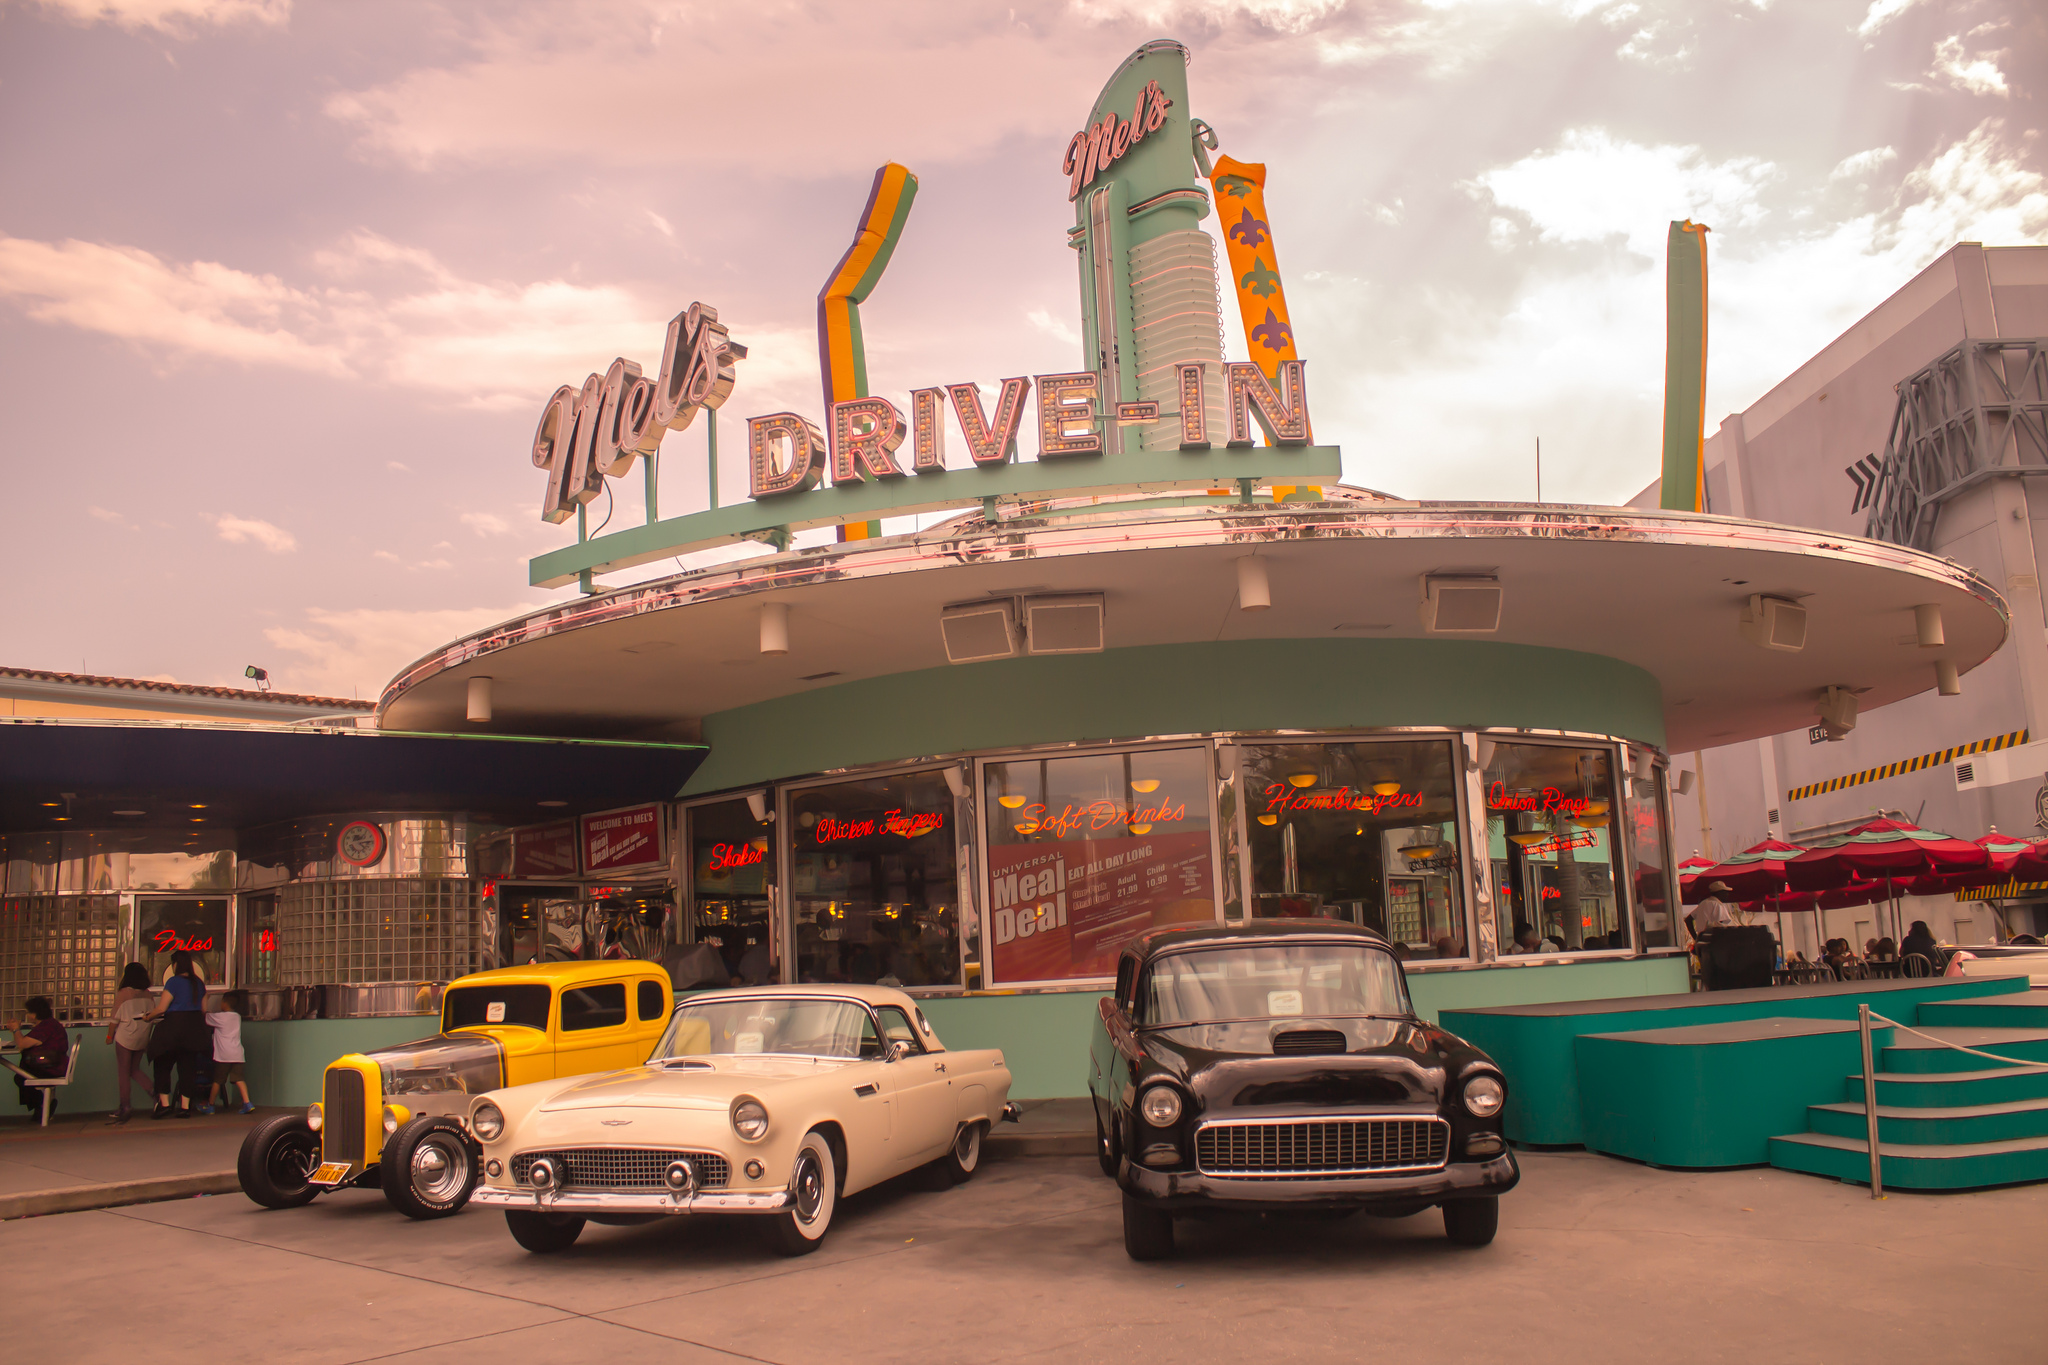 This Specific Retro Restaurant Chain Is Commonly Associated With The Popular Movie American Graffiti